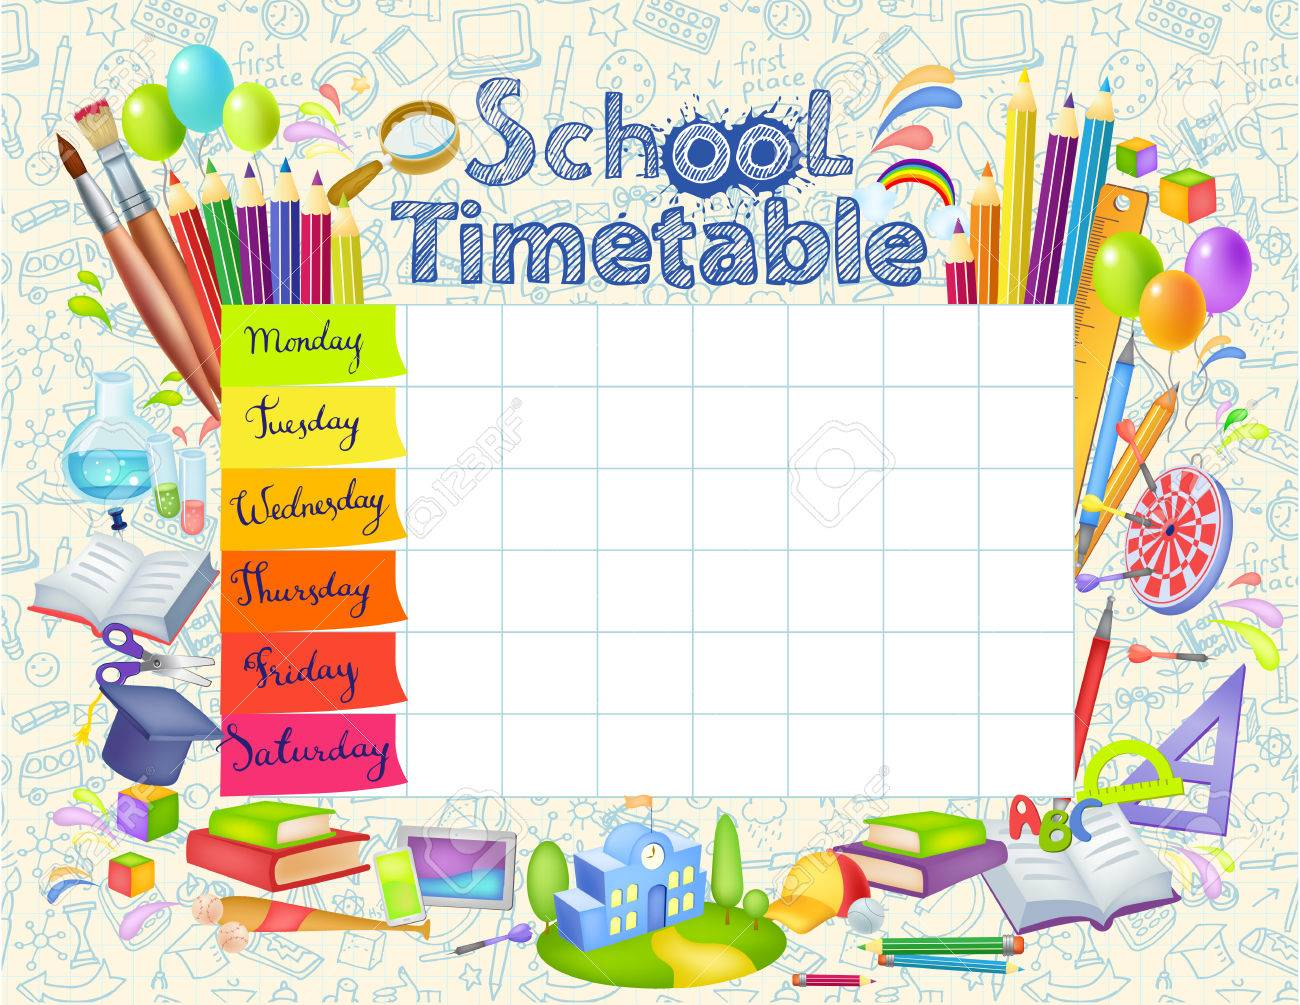 Template School Timetable Royalty Free Cliparts, Vectors, And ...